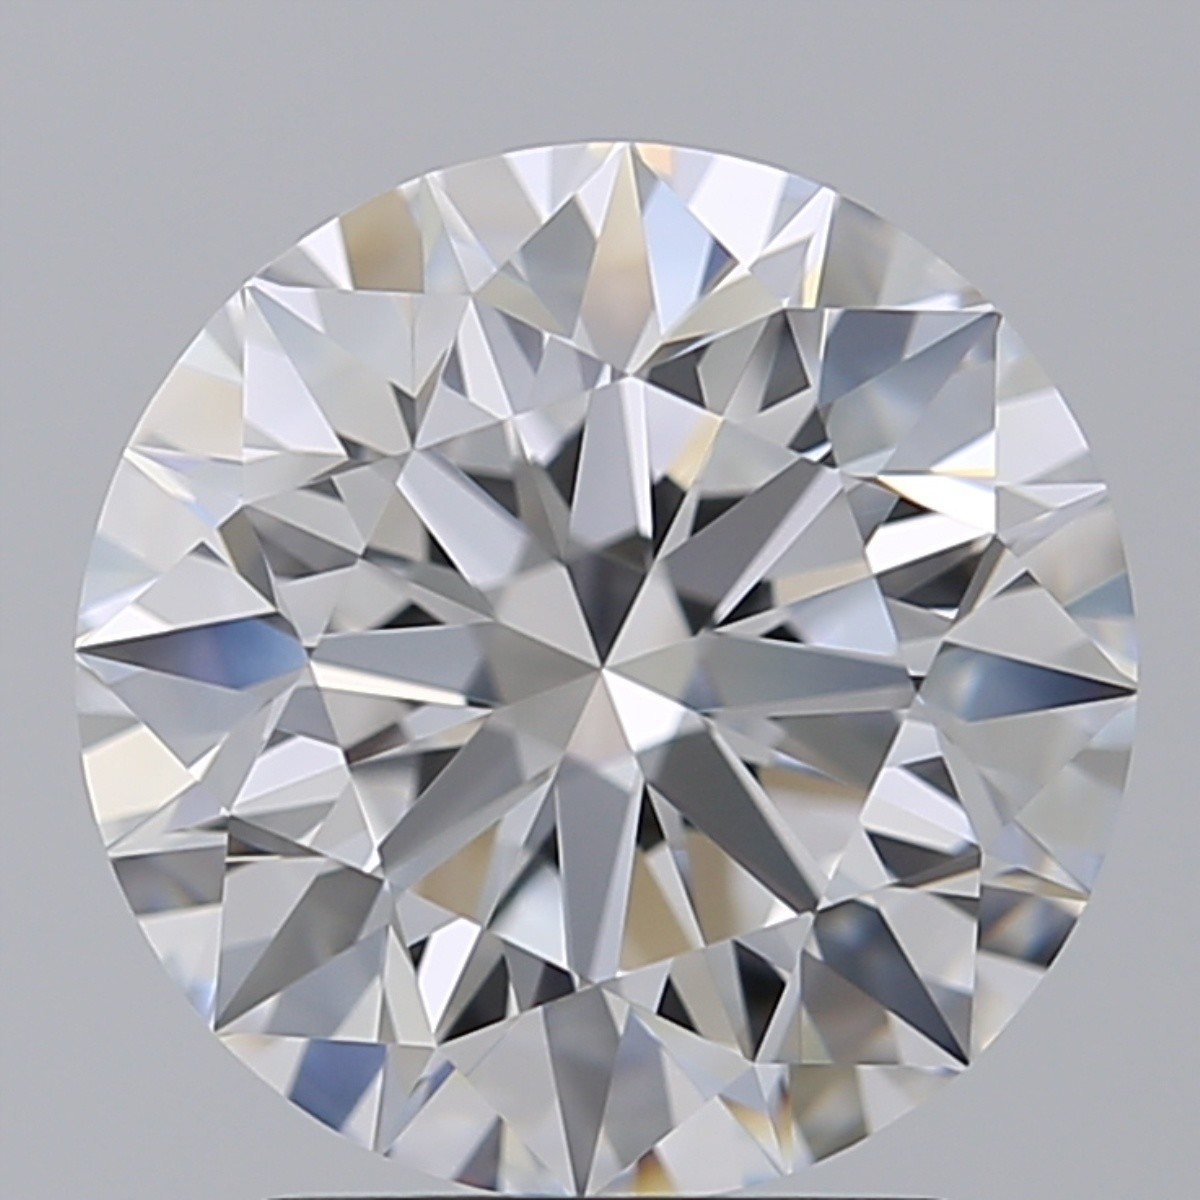 2.55 Carat Round Brilliant Diamond (D/FL)